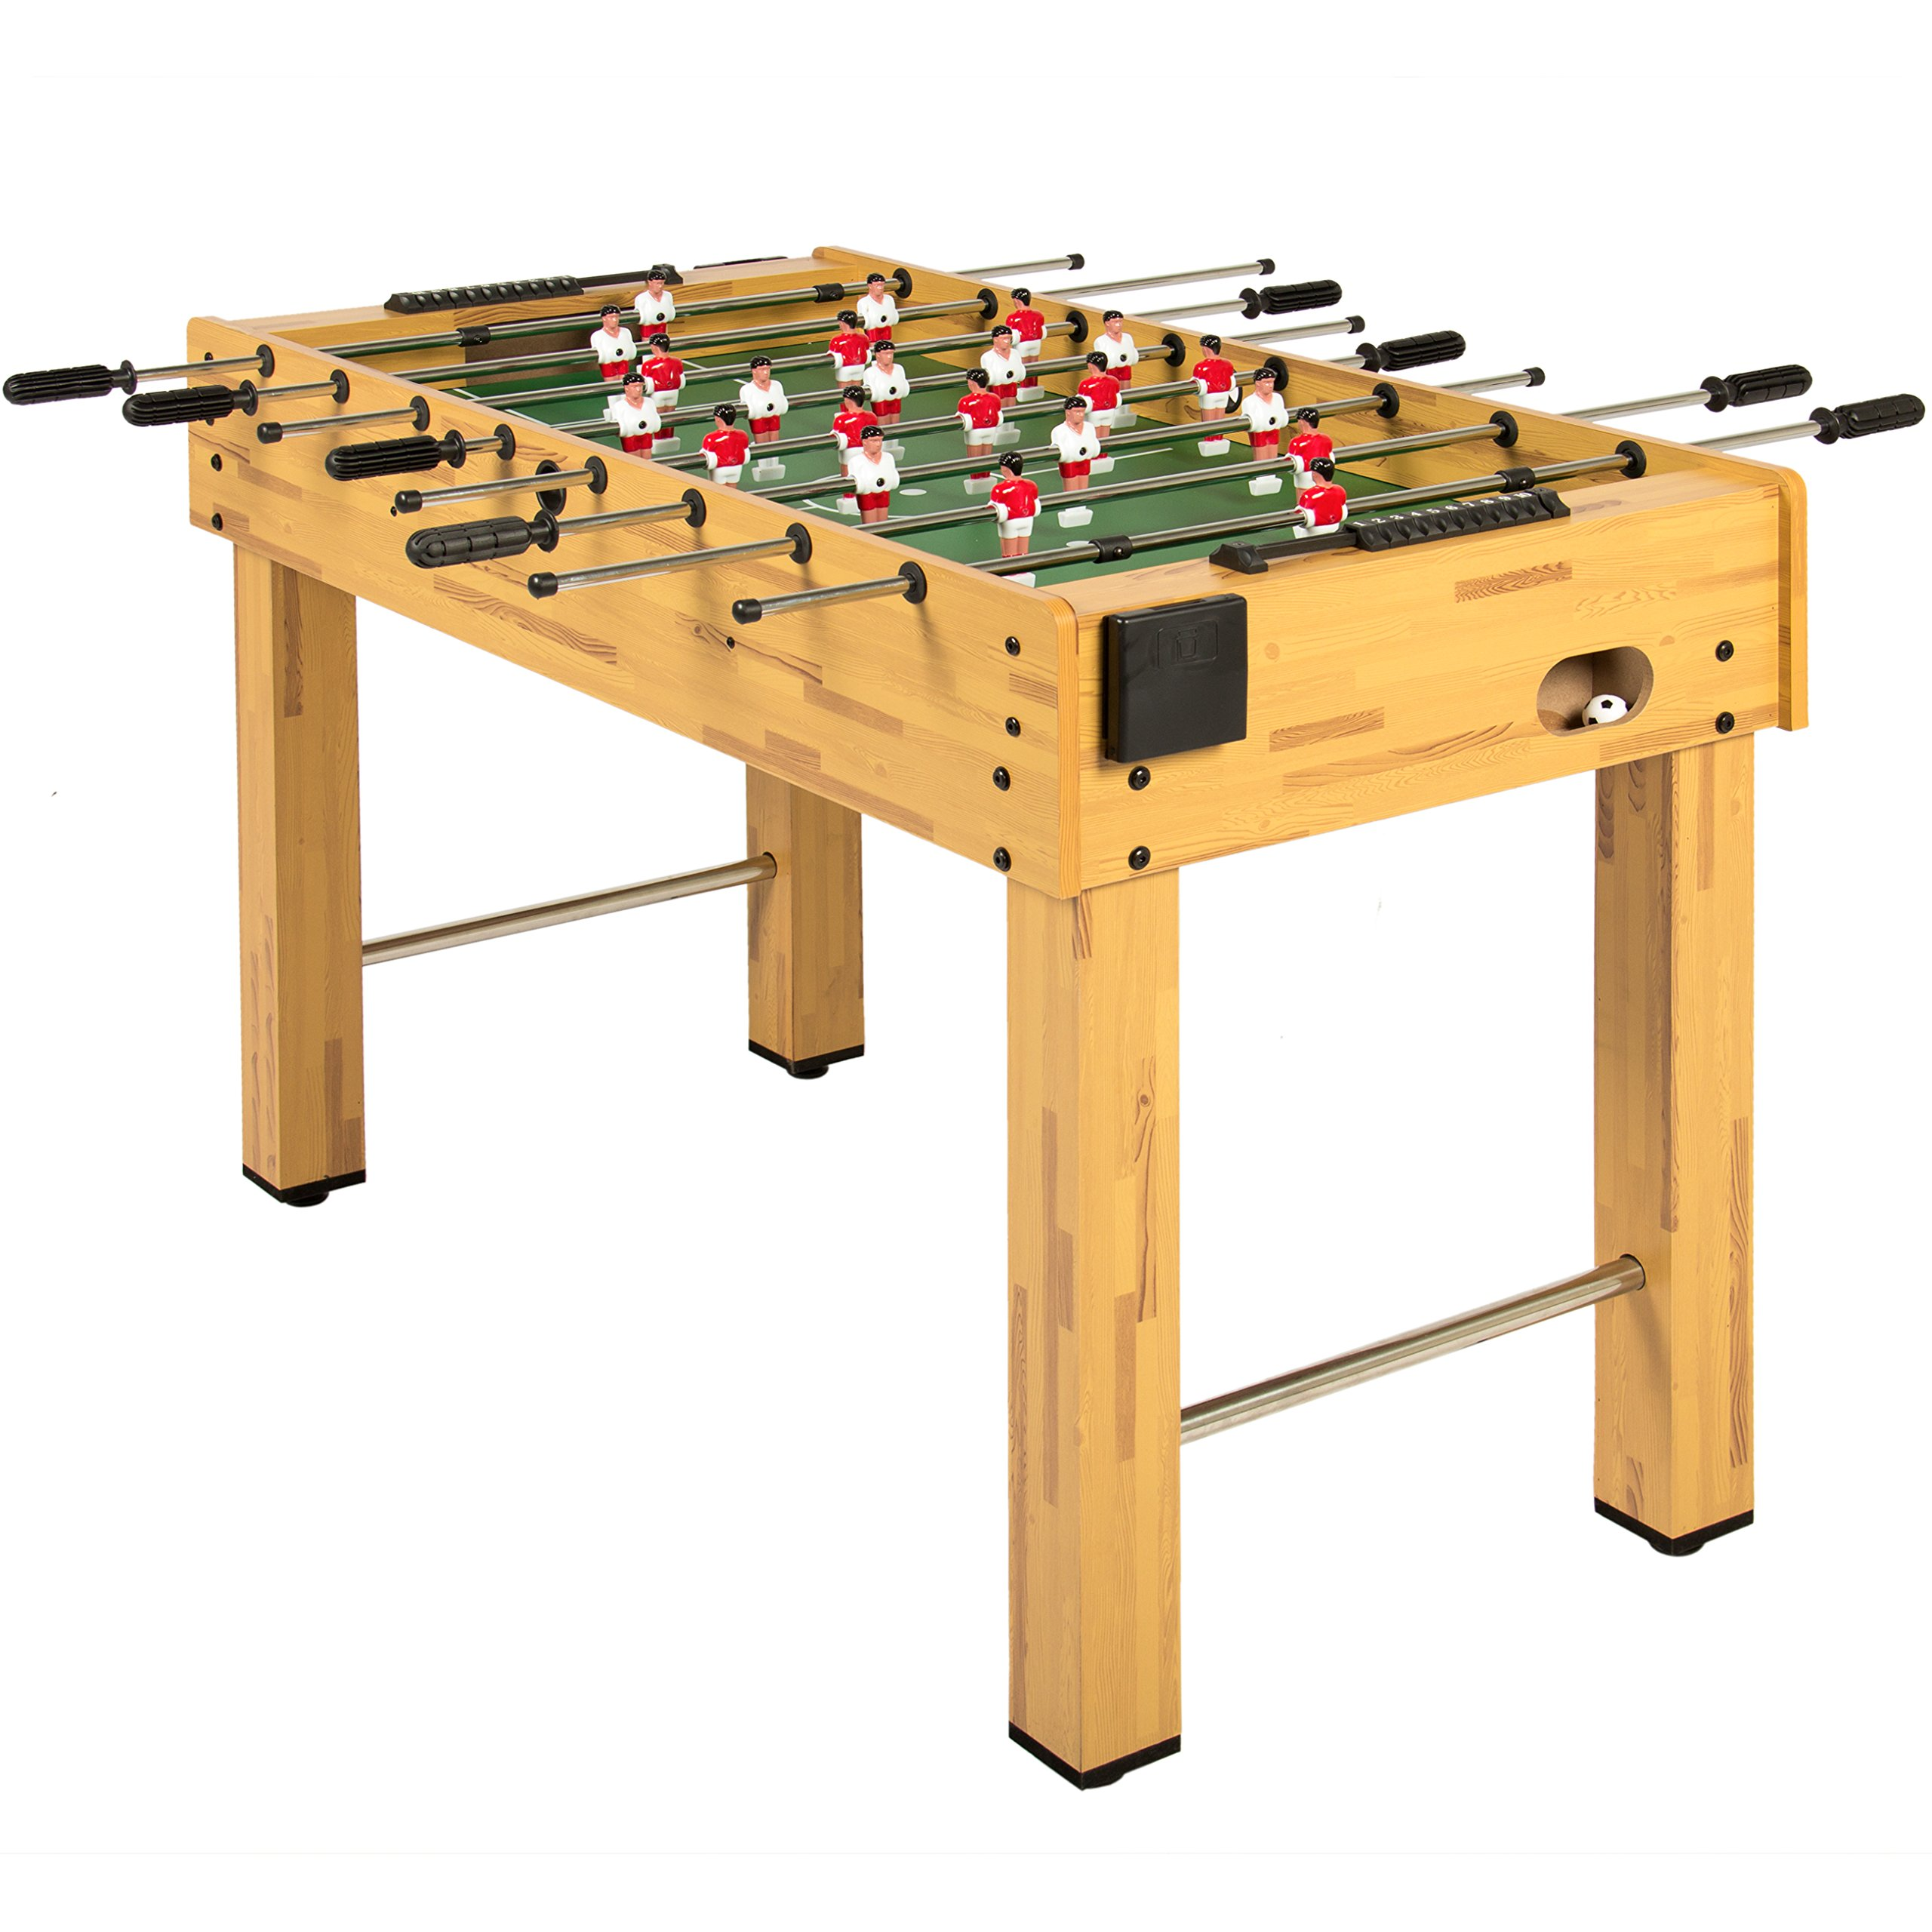 Best Choice Products 48'' Foosball Table Competition Sized Soccer Arcade Game Room football Sports